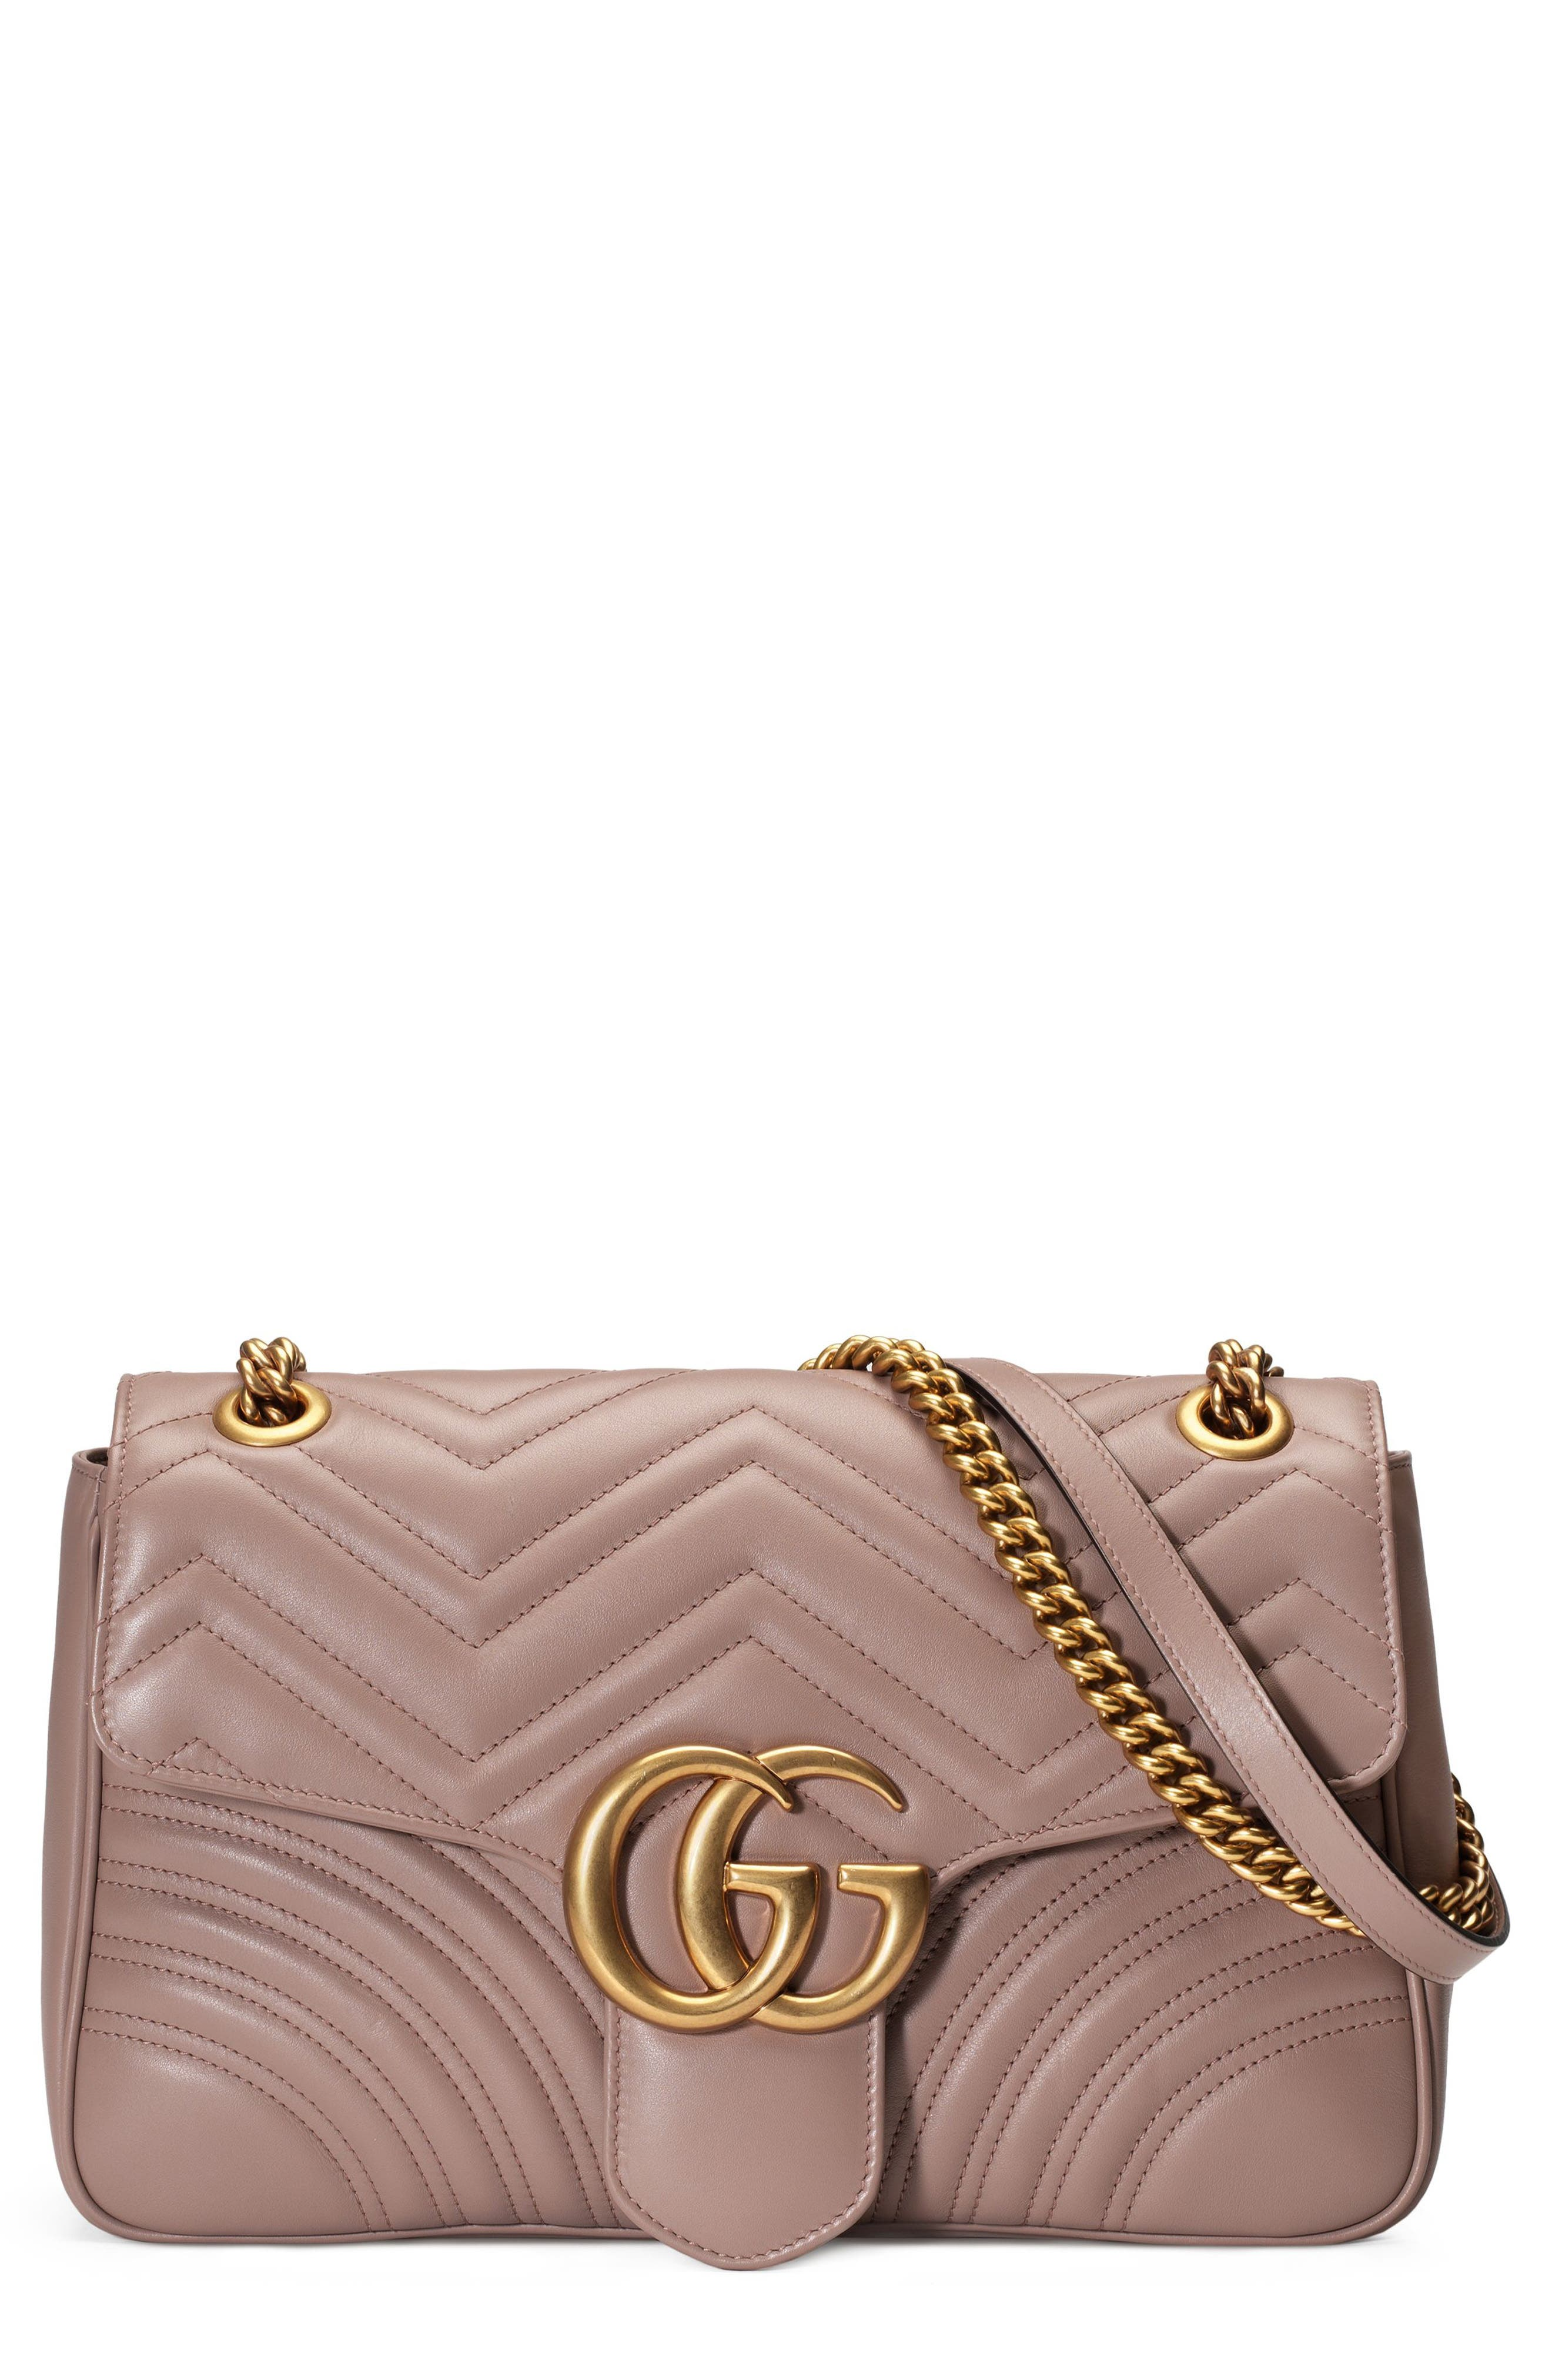 GUCCI Medium GG Marmont 2.0 Matelassé Leather Shoulder Bag, Main, color, PORCELAIN ROSE/ PORCELAIN ROSE